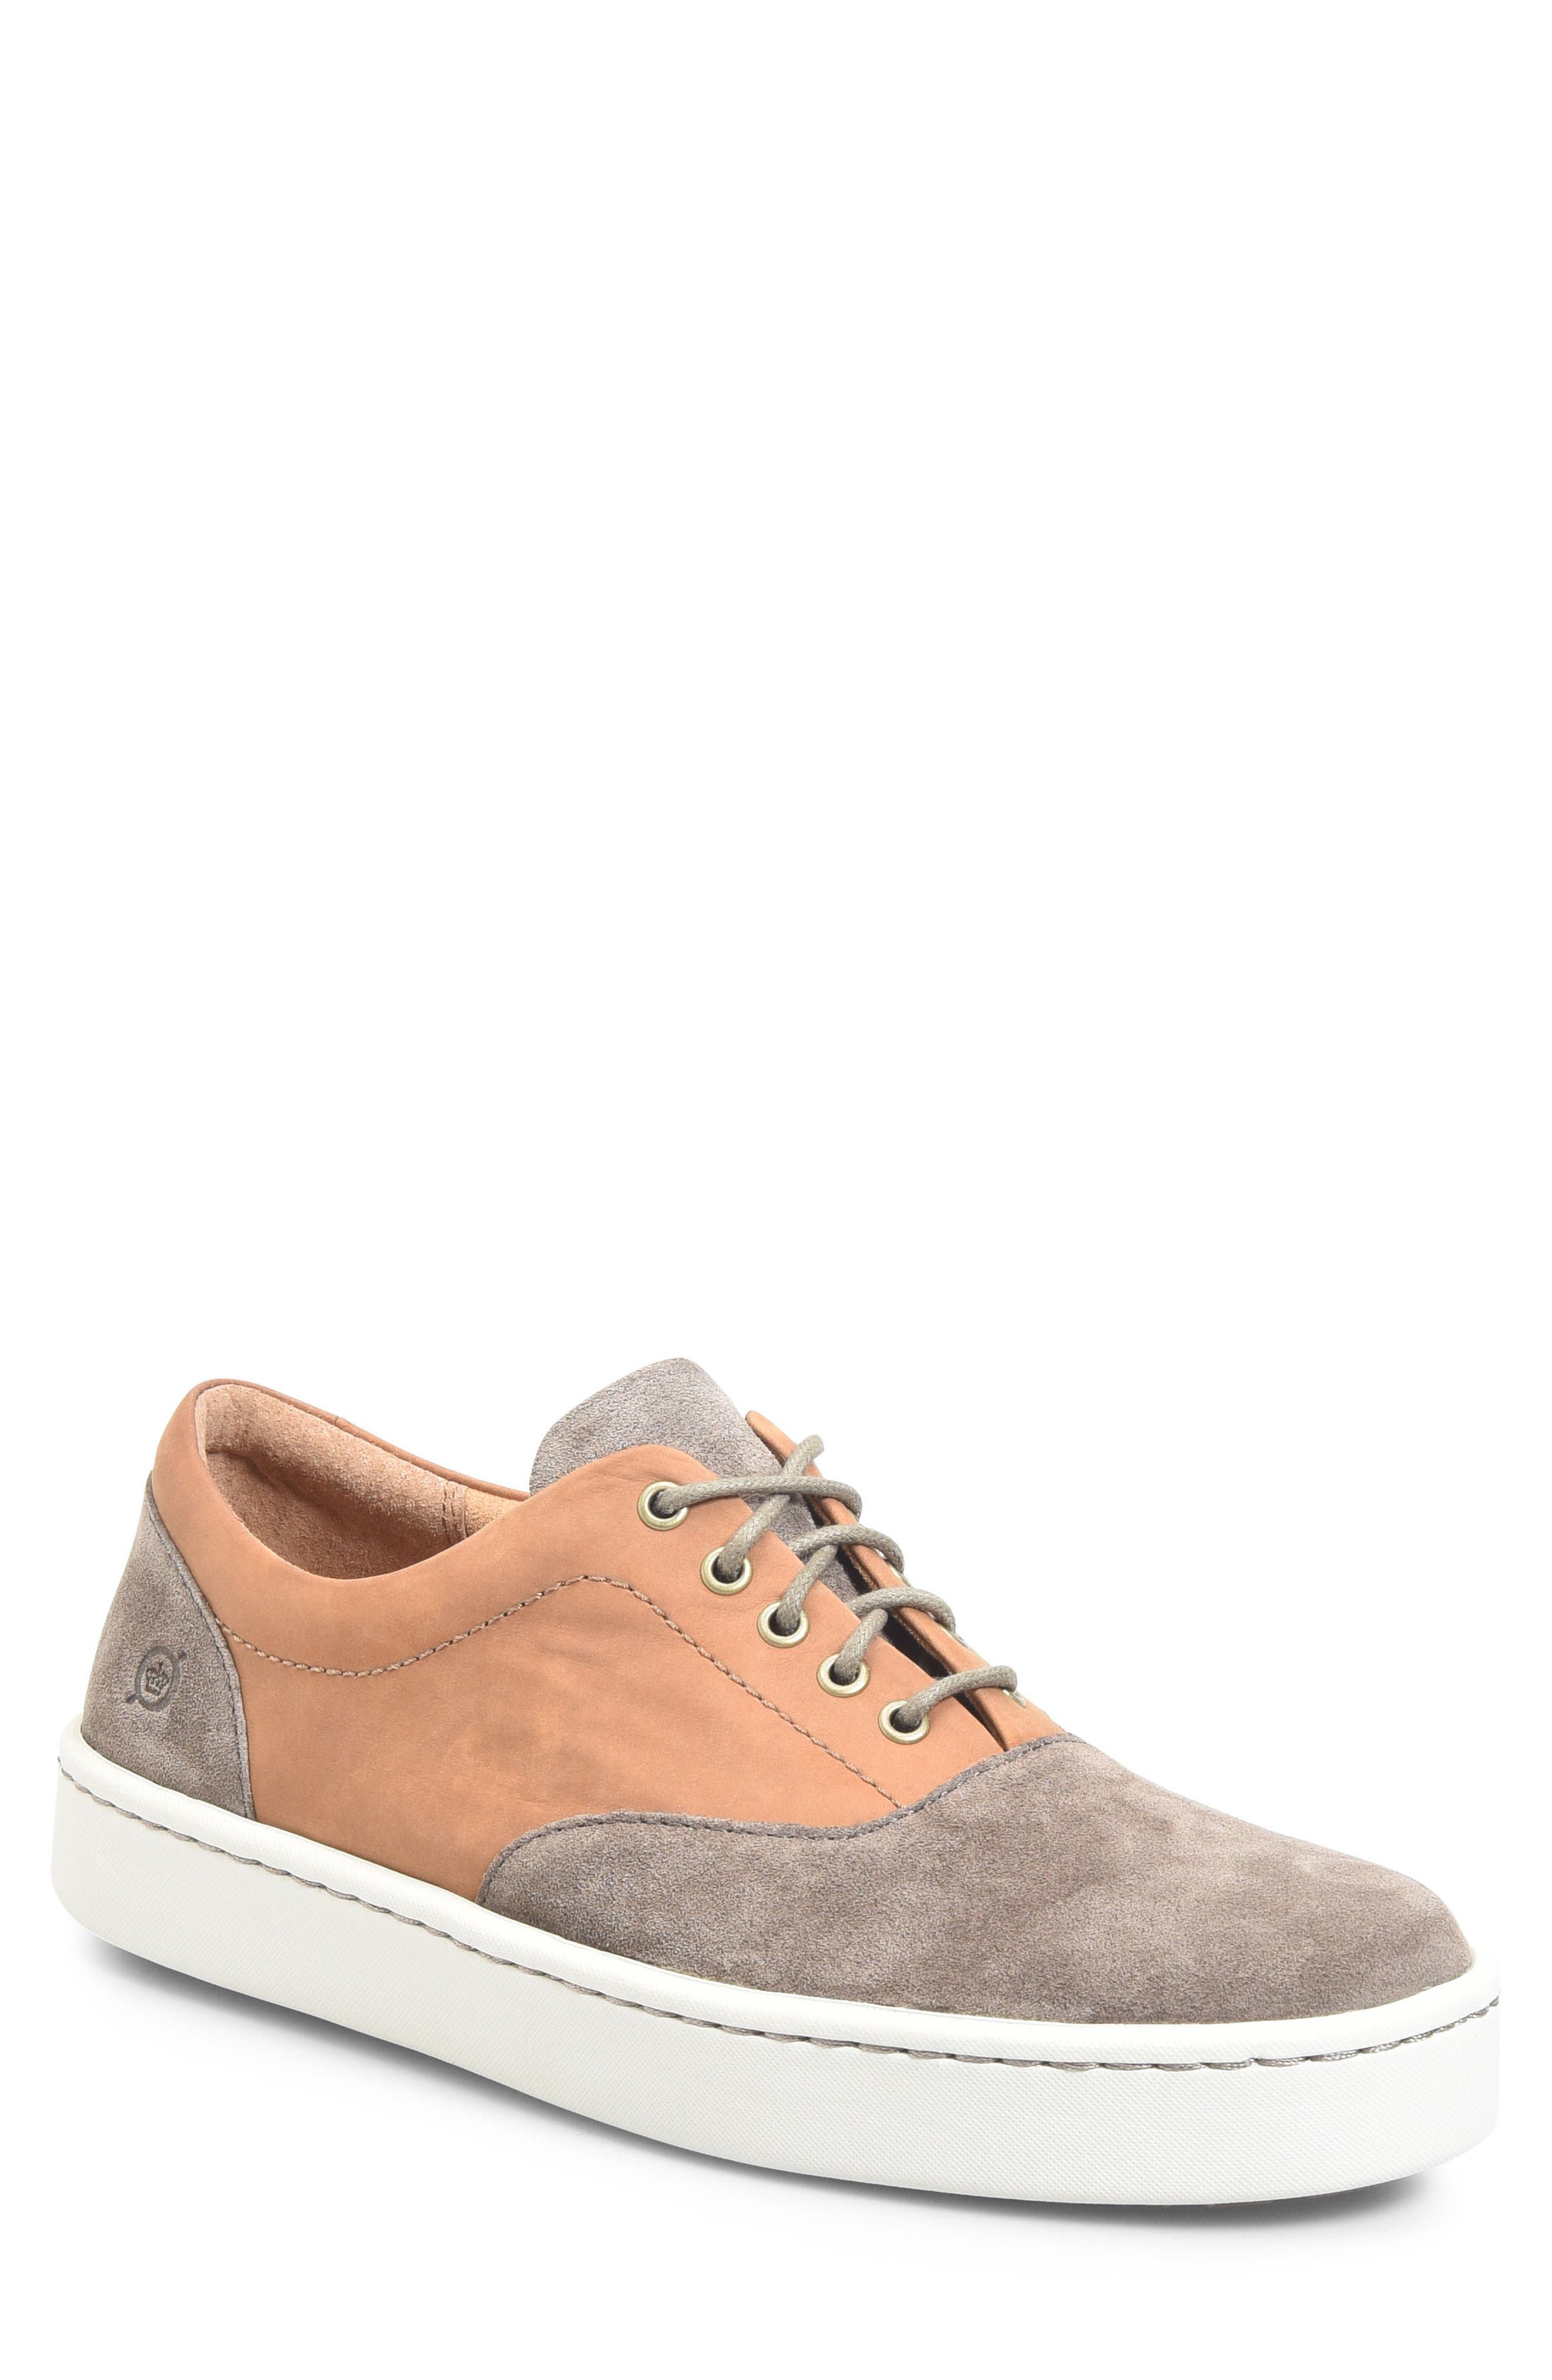 Keystone Low Top Sneaker,                             Main thumbnail 1, color,                             Taupe Leather